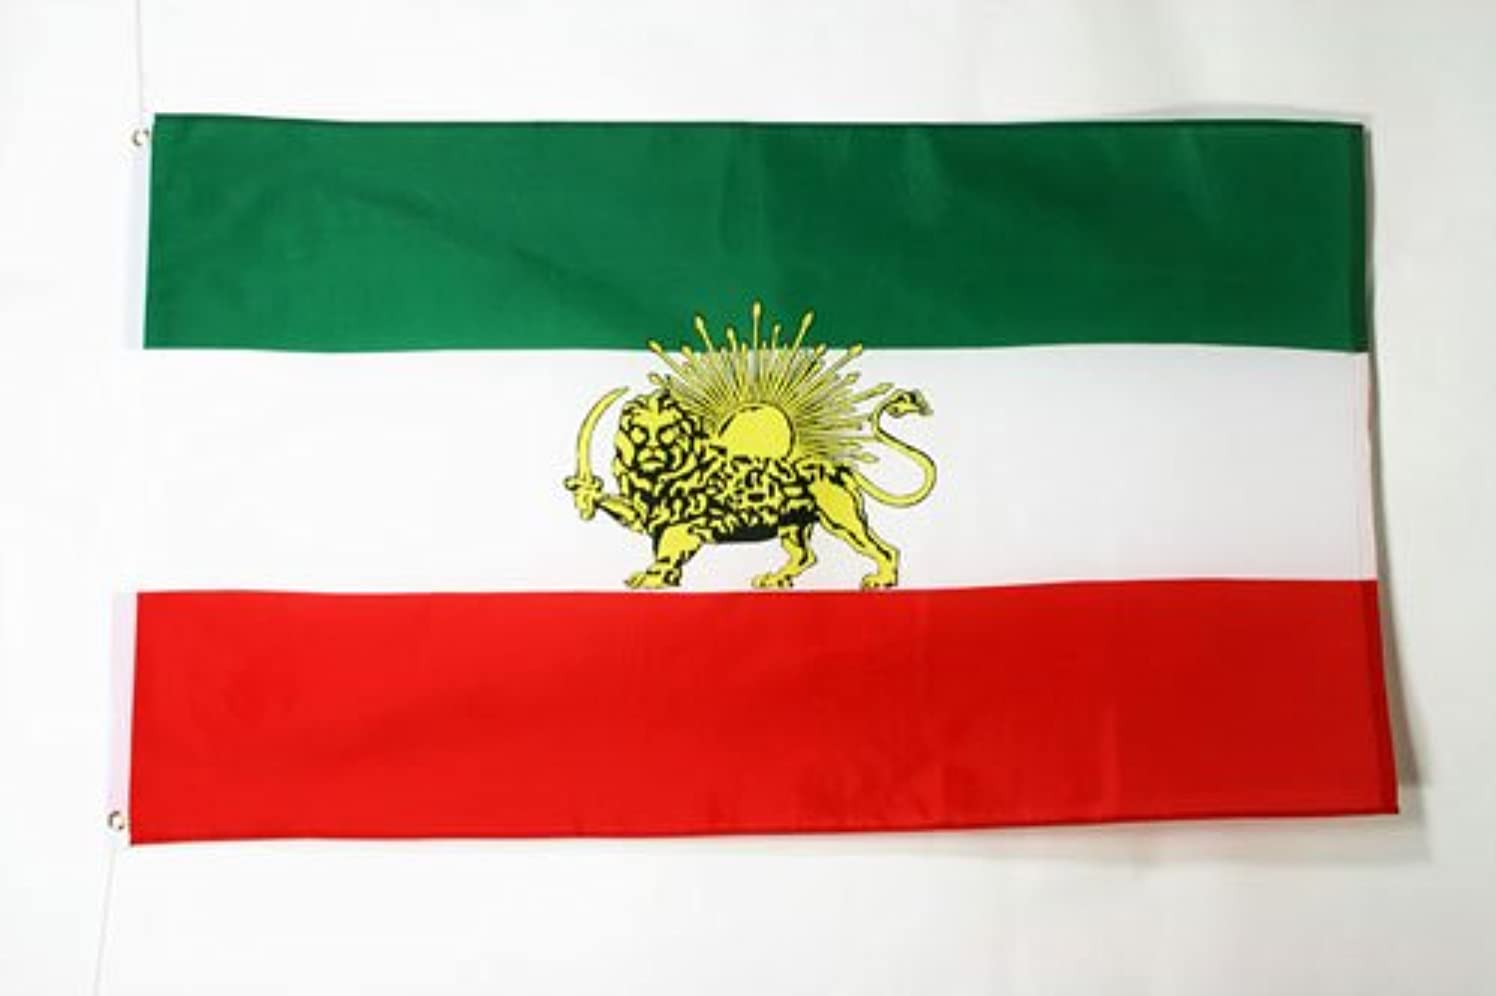 AZ FLAG Iran Old Flag 2' x 3' - Former Iranian Flags 60 x 90 cm - Banner 2x3 ft